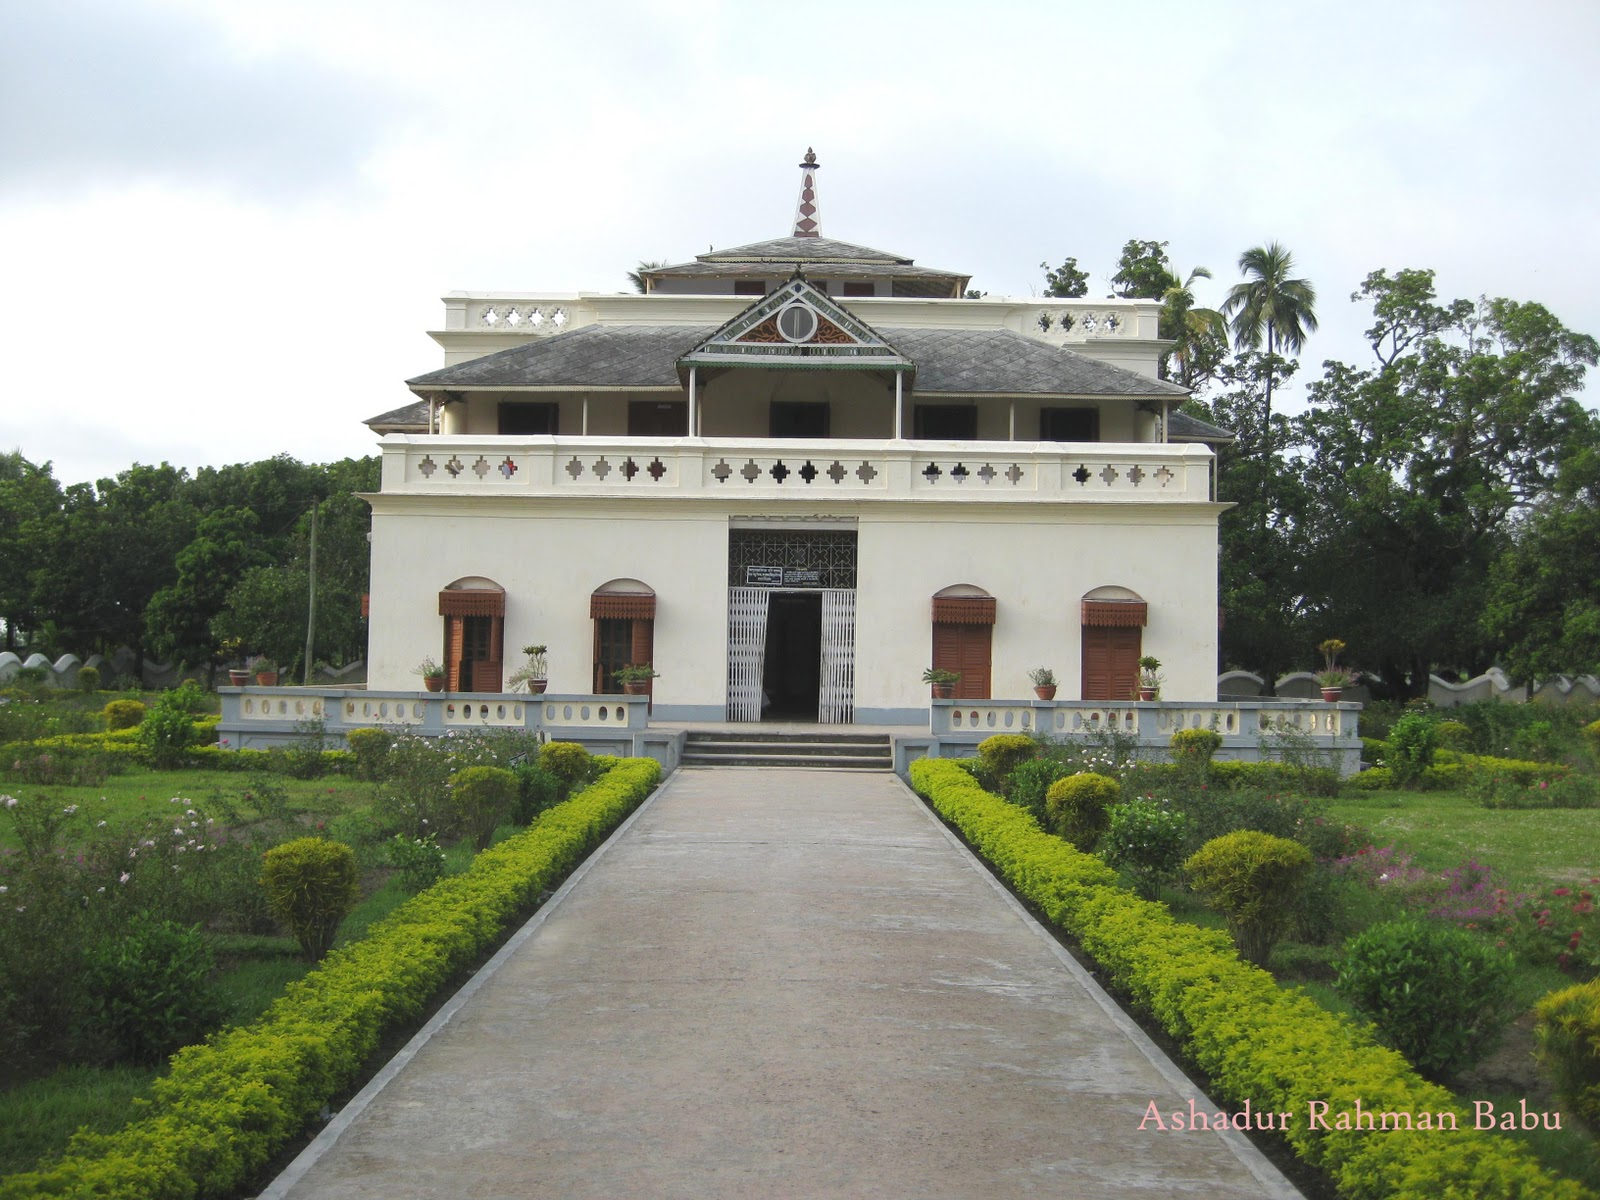 historical places of bangladesh বাংলাদেশের ৗতিহাসিক স্থানসমূহ this is a open group for all i request you all to submit only the photo(s) of historical background and famous places/ articles of bangladesh.